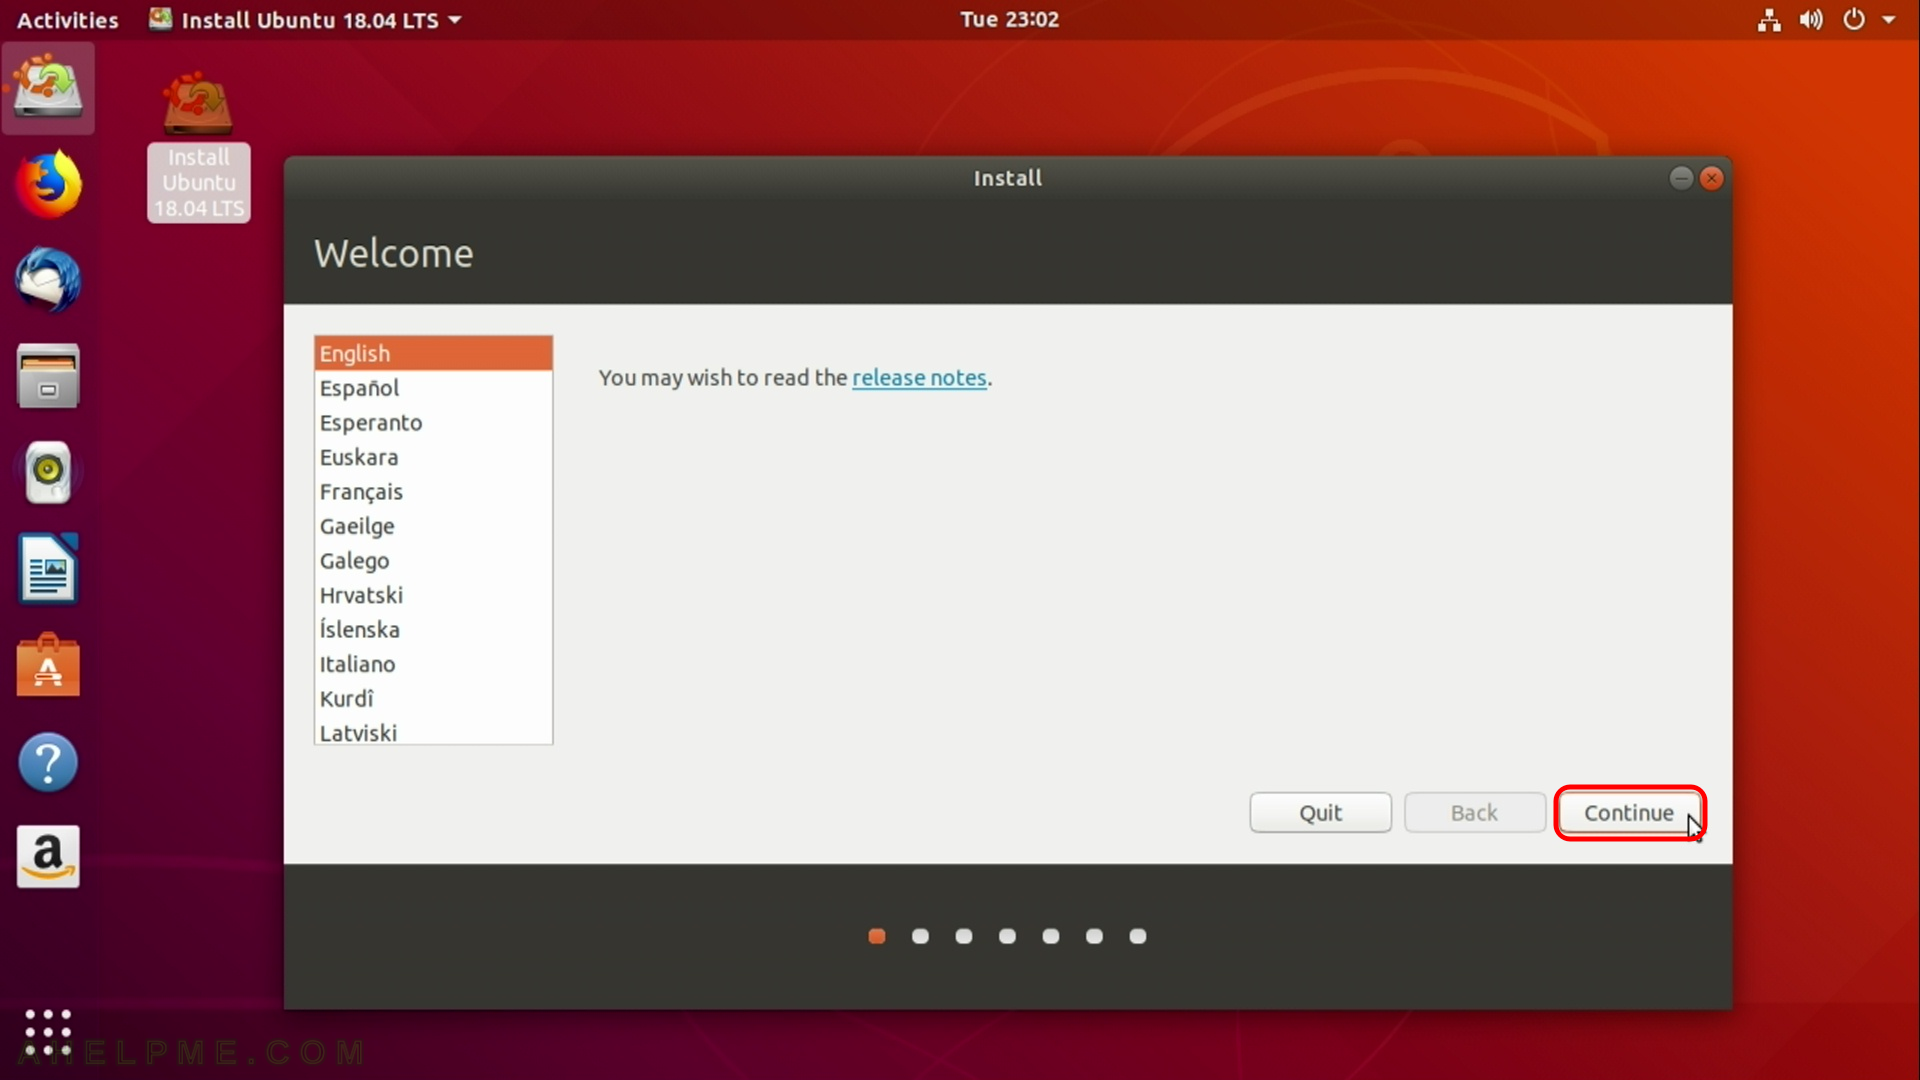 Install Ubuntu Desktop 18 04 LTS on a PC with existing